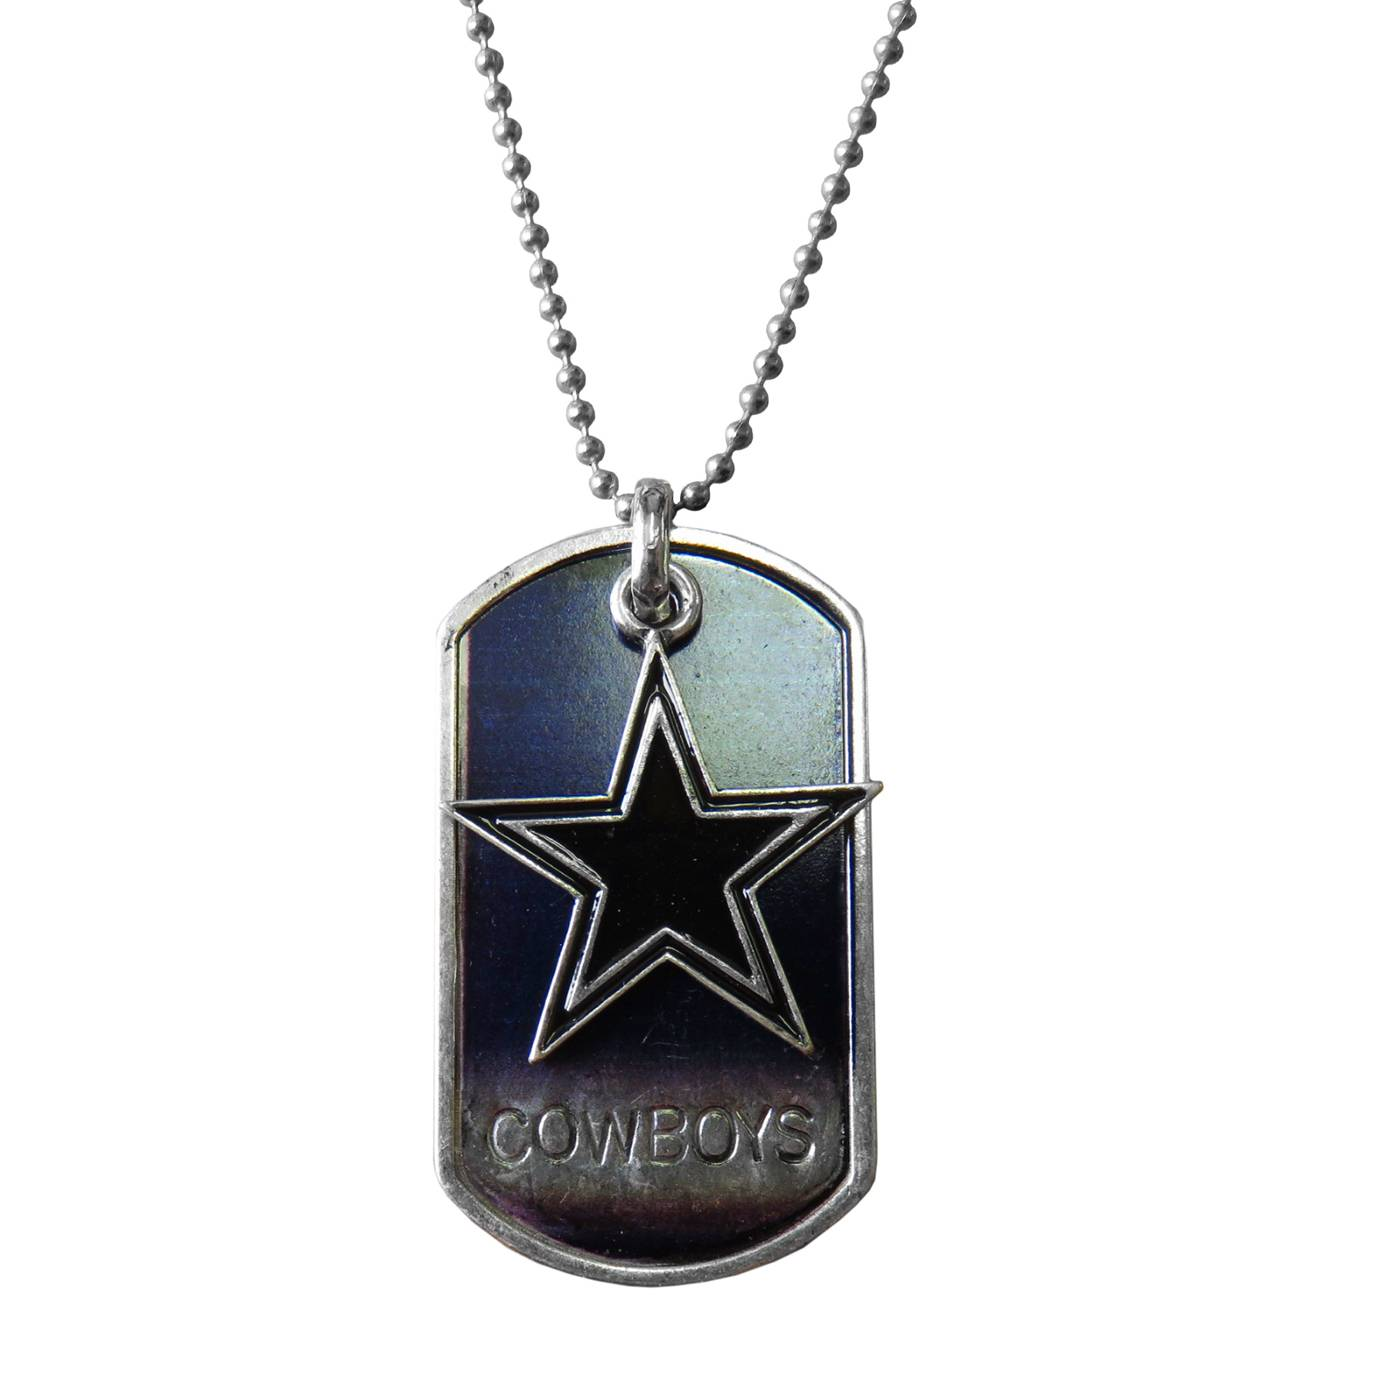 Dallas cowboys dog tag charm necklace show your team pride with the dallas cowboys dog tag charm necklace the dog tag style pendant hangs from a ball style chain and features your favorite aloadofball Gallery